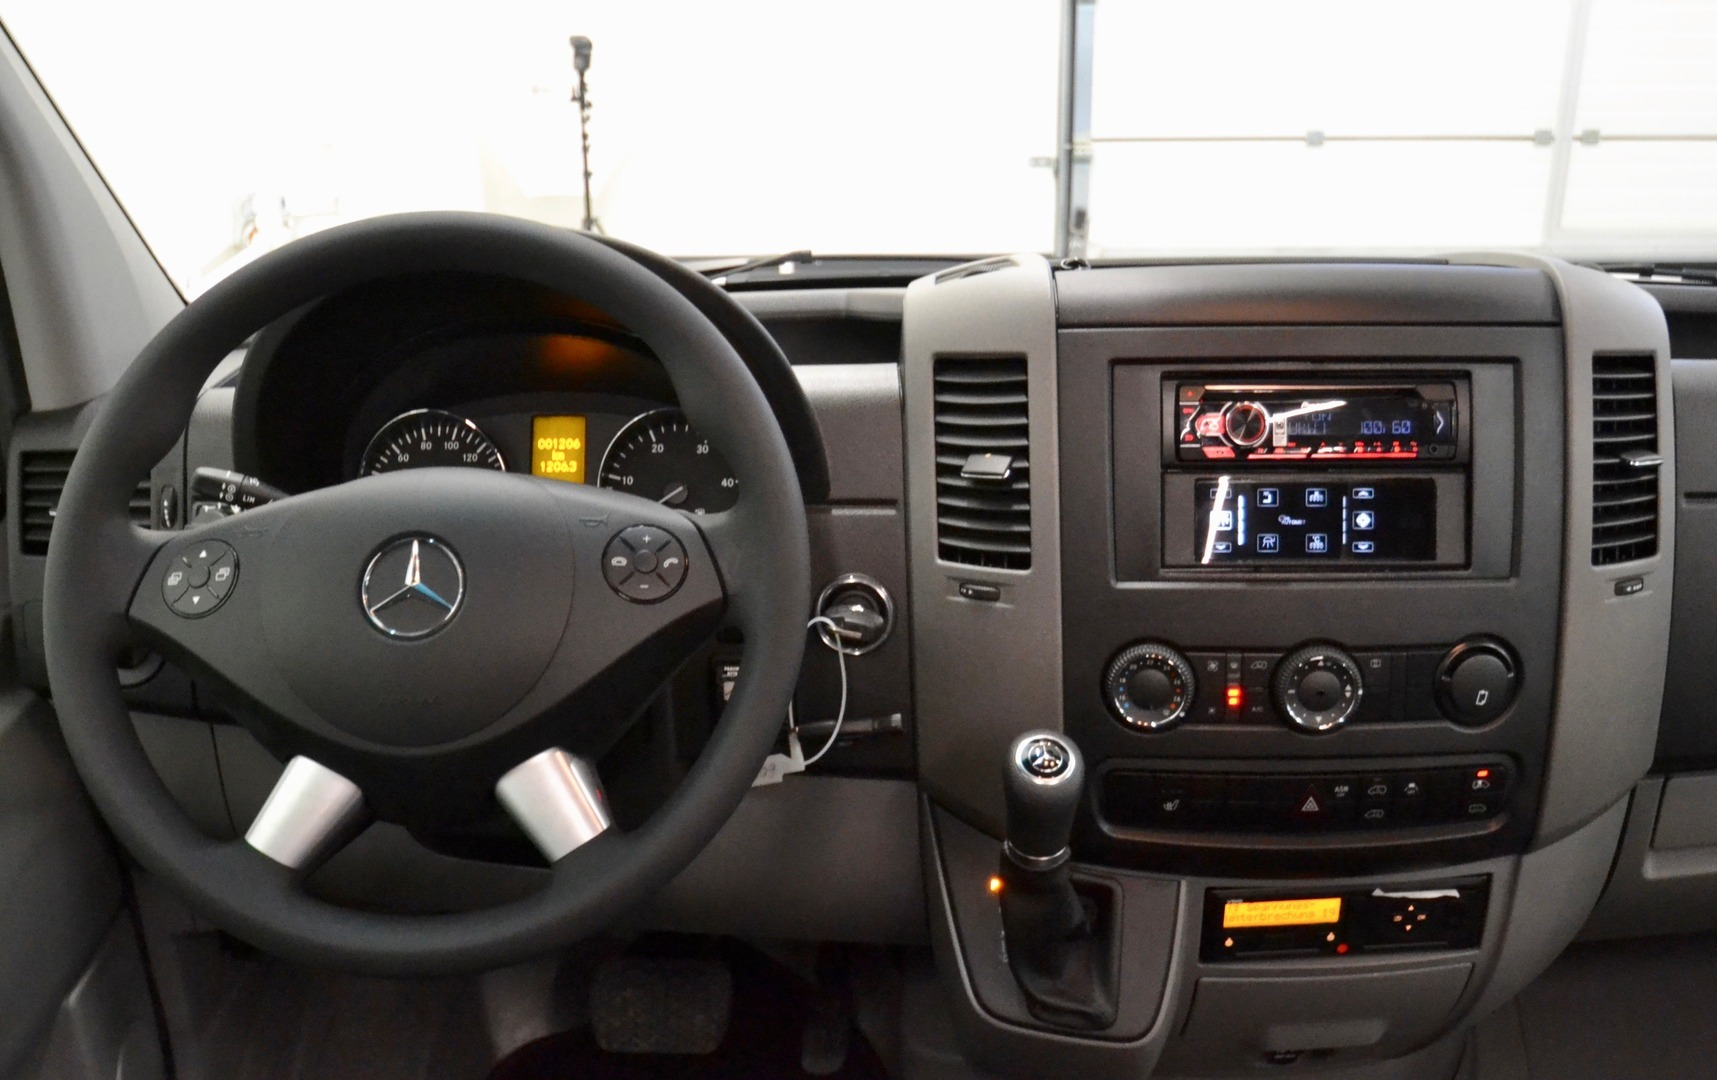 Mercedes-Benz Sprinter, 314 CDI